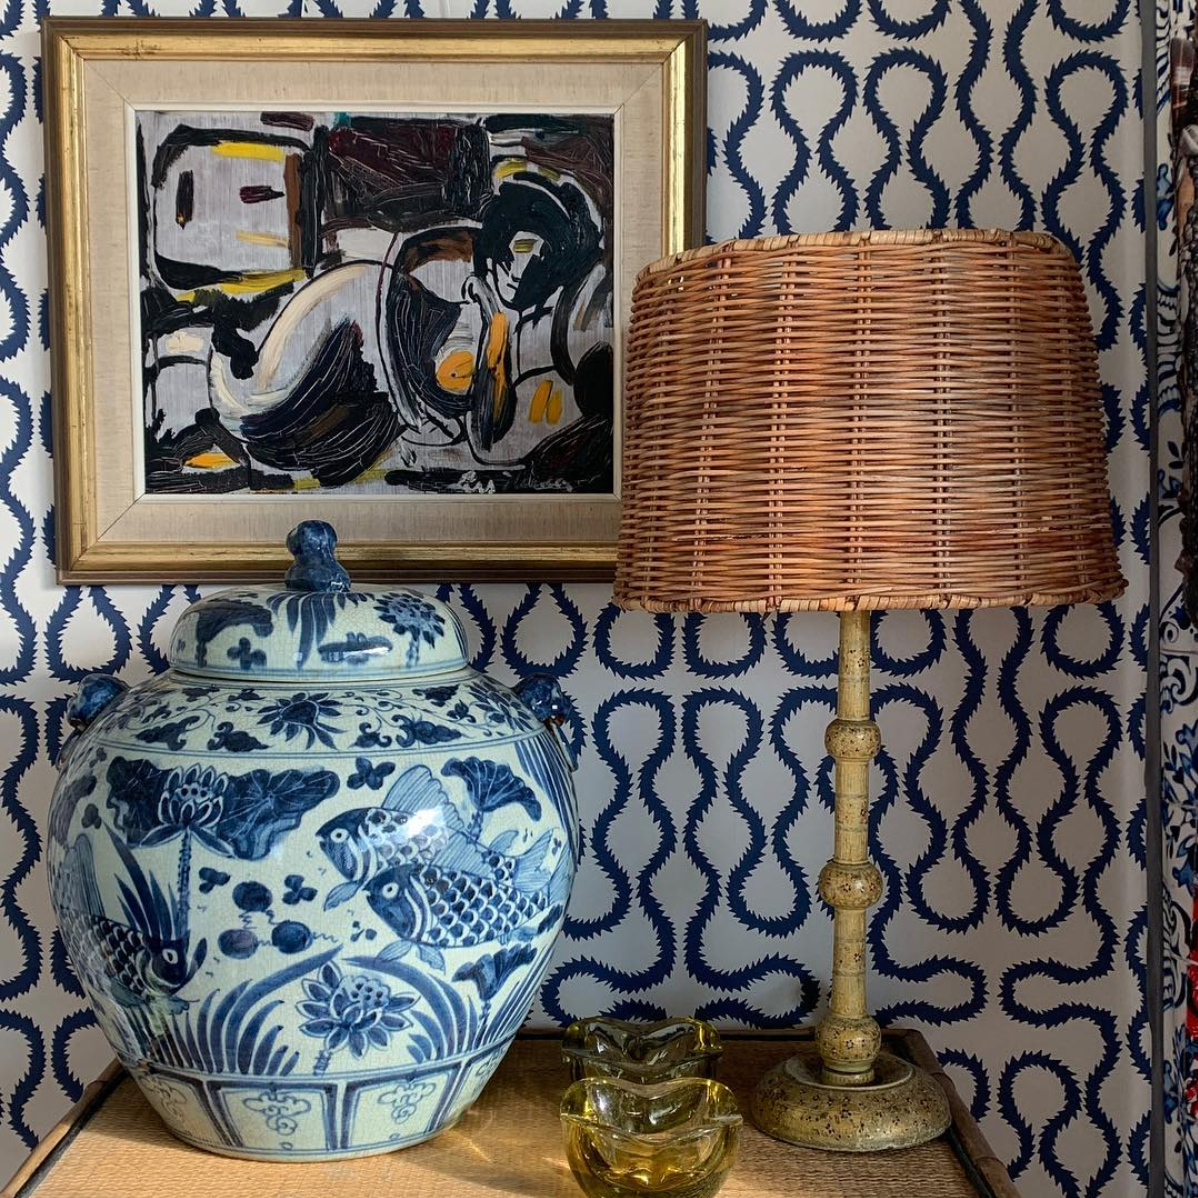 Our Asho Empire Lampshade in @etalageuk's home